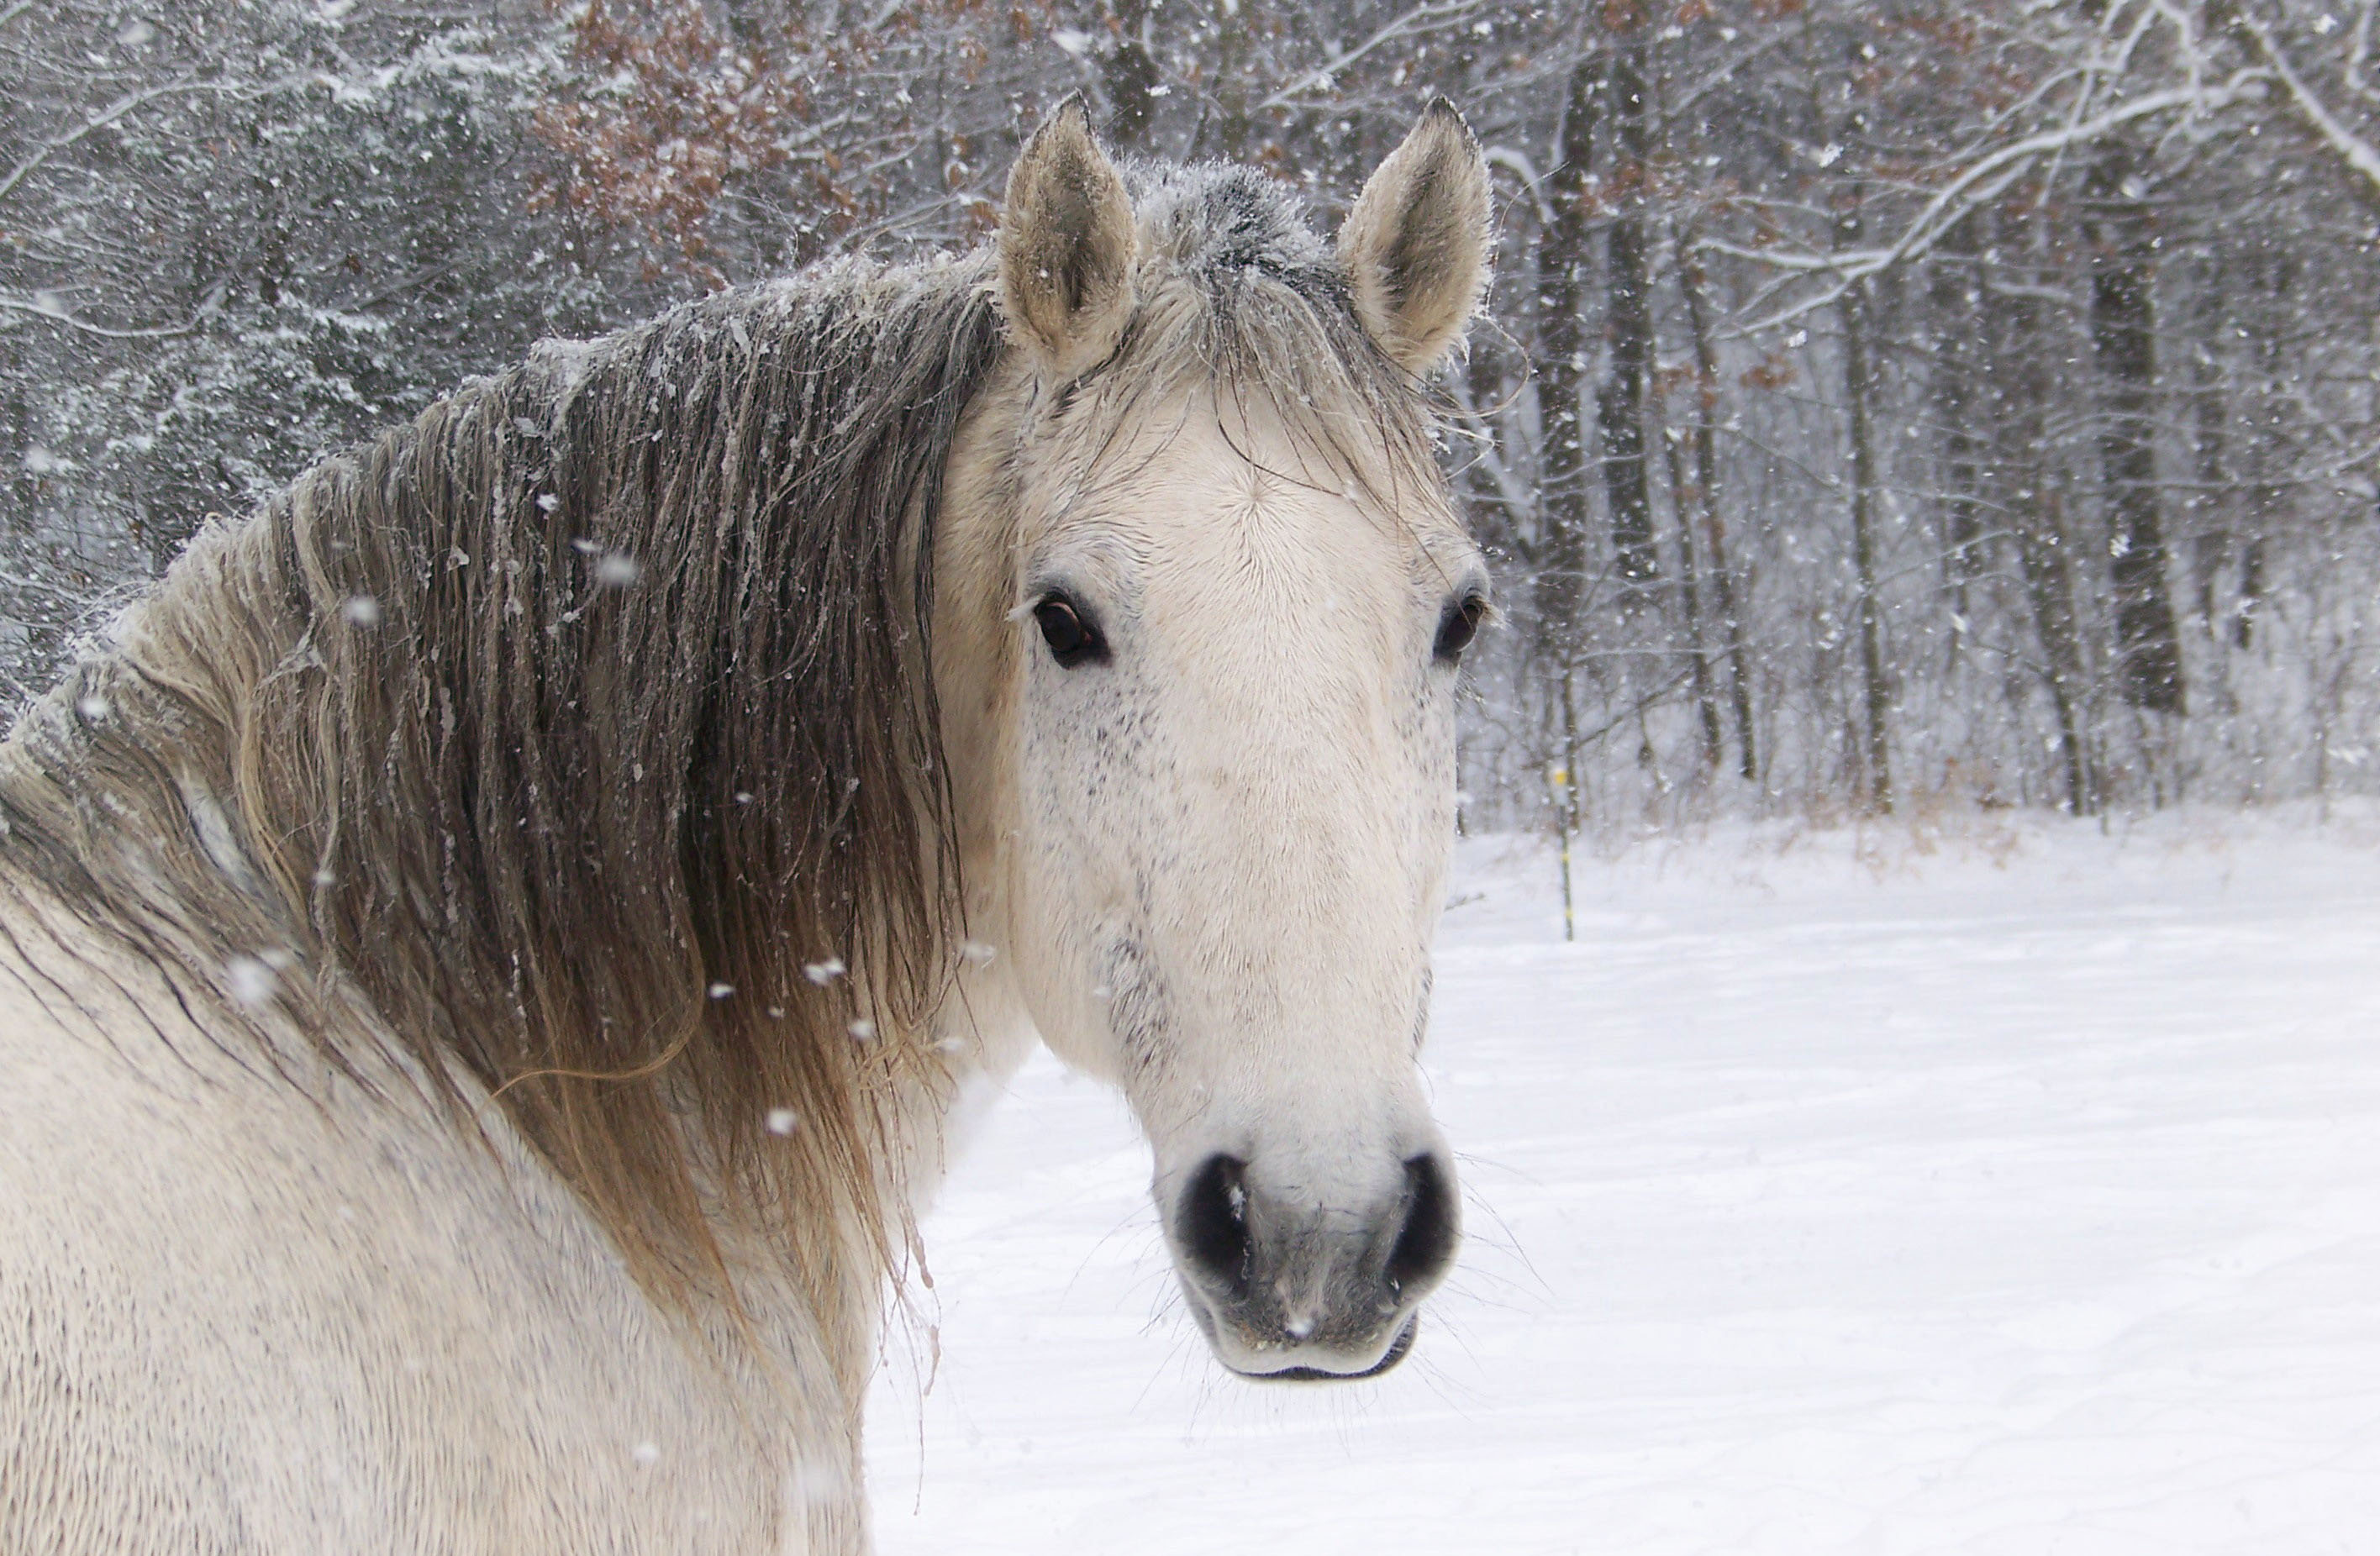 Wallpaper horse horse white face snow wallpapers animals 2832x1852